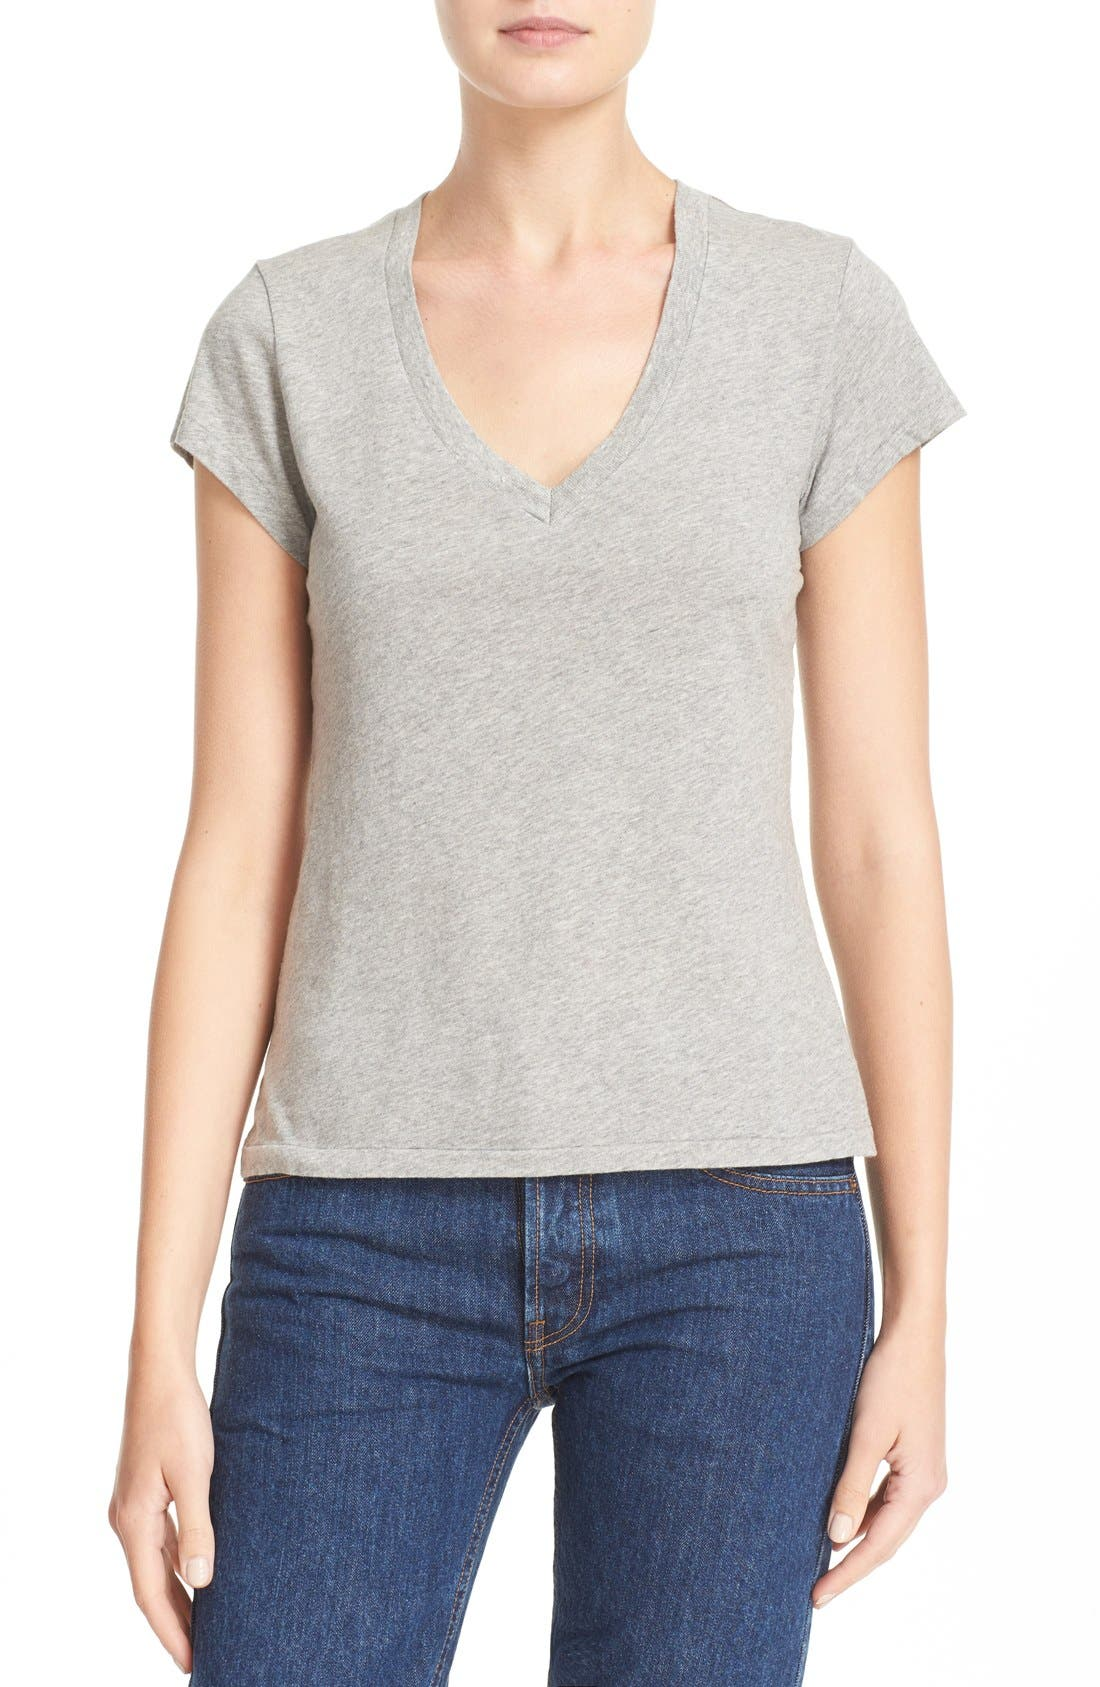 x Hanes '1960s Slim' V-Neck Tee,                             Main thumbnail 1, color,